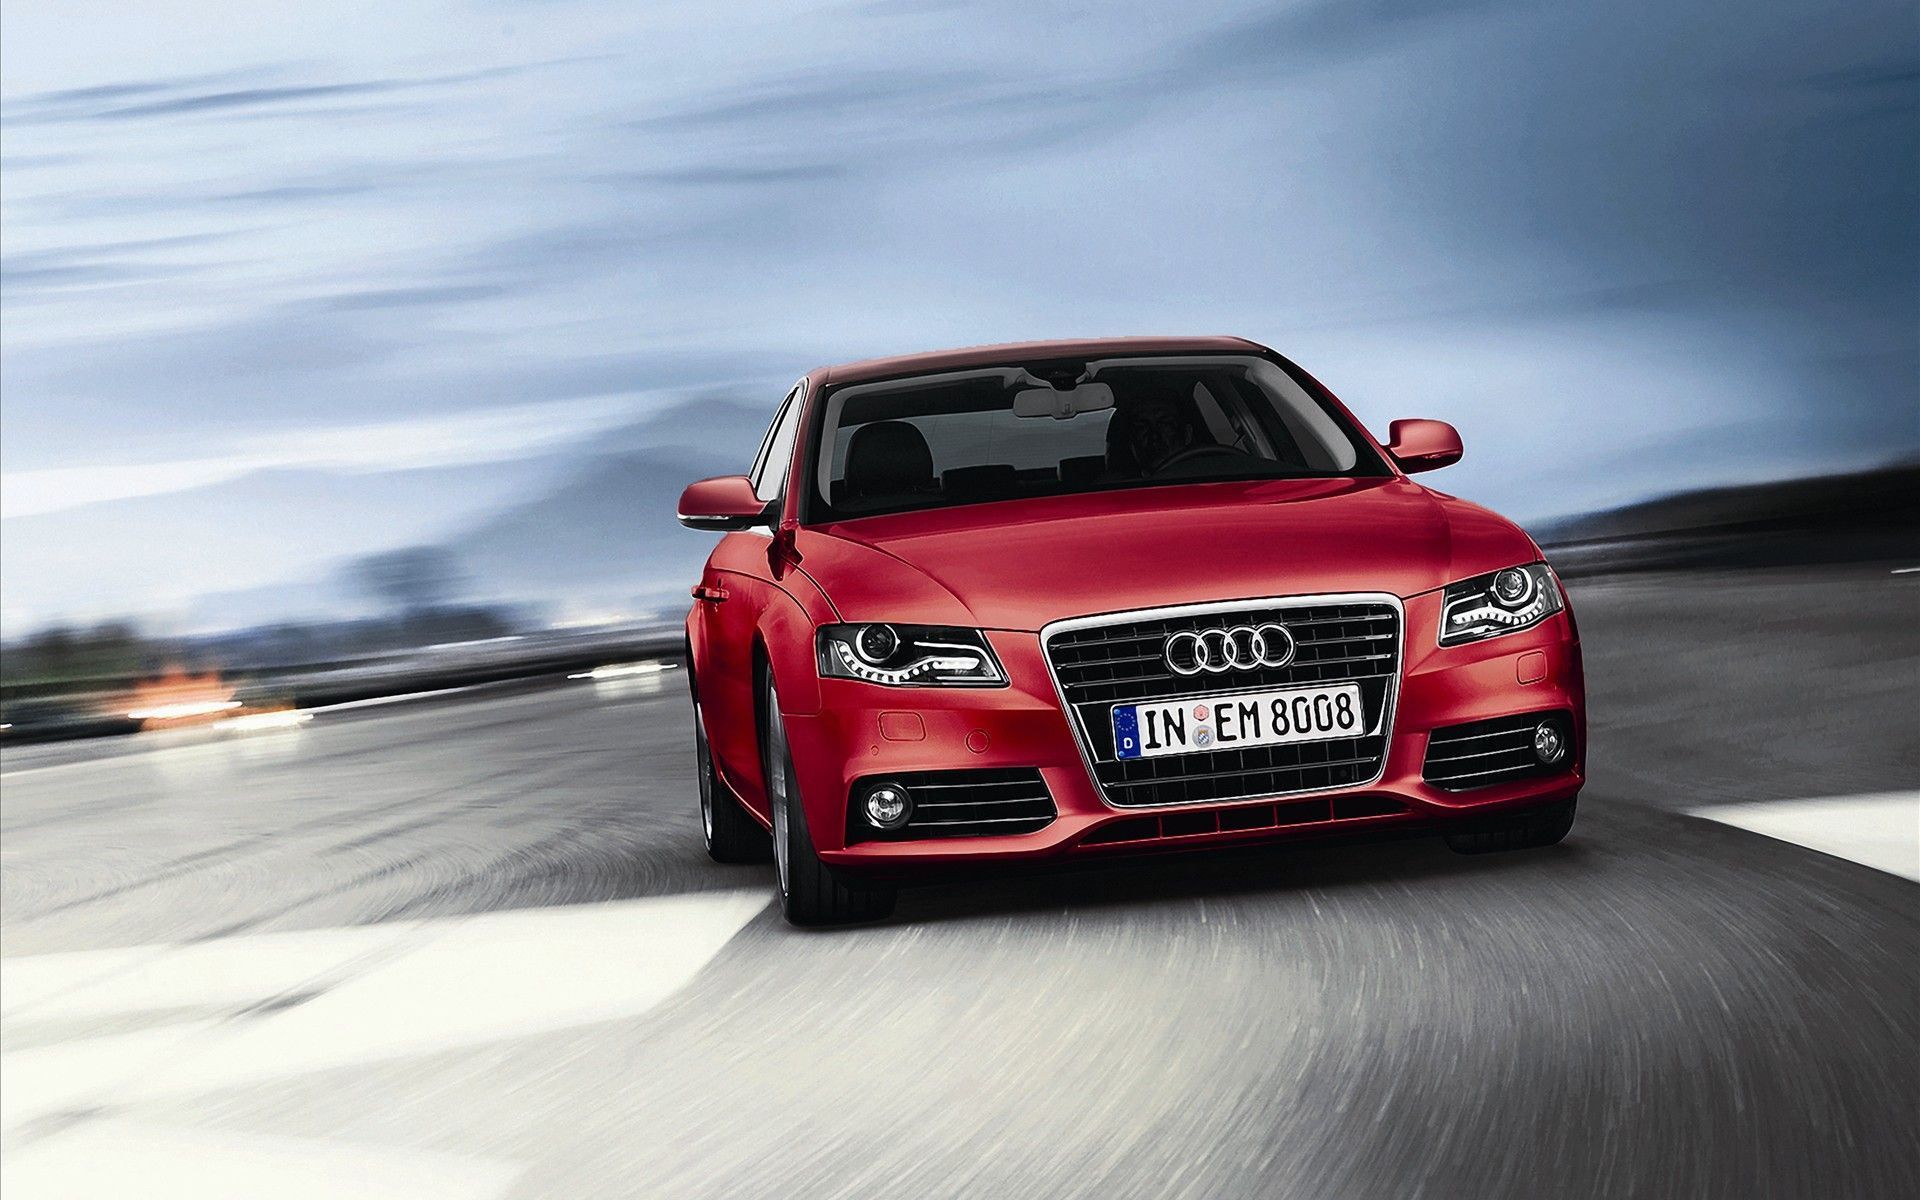 Audi A4 Red Cars Wallpaper Image